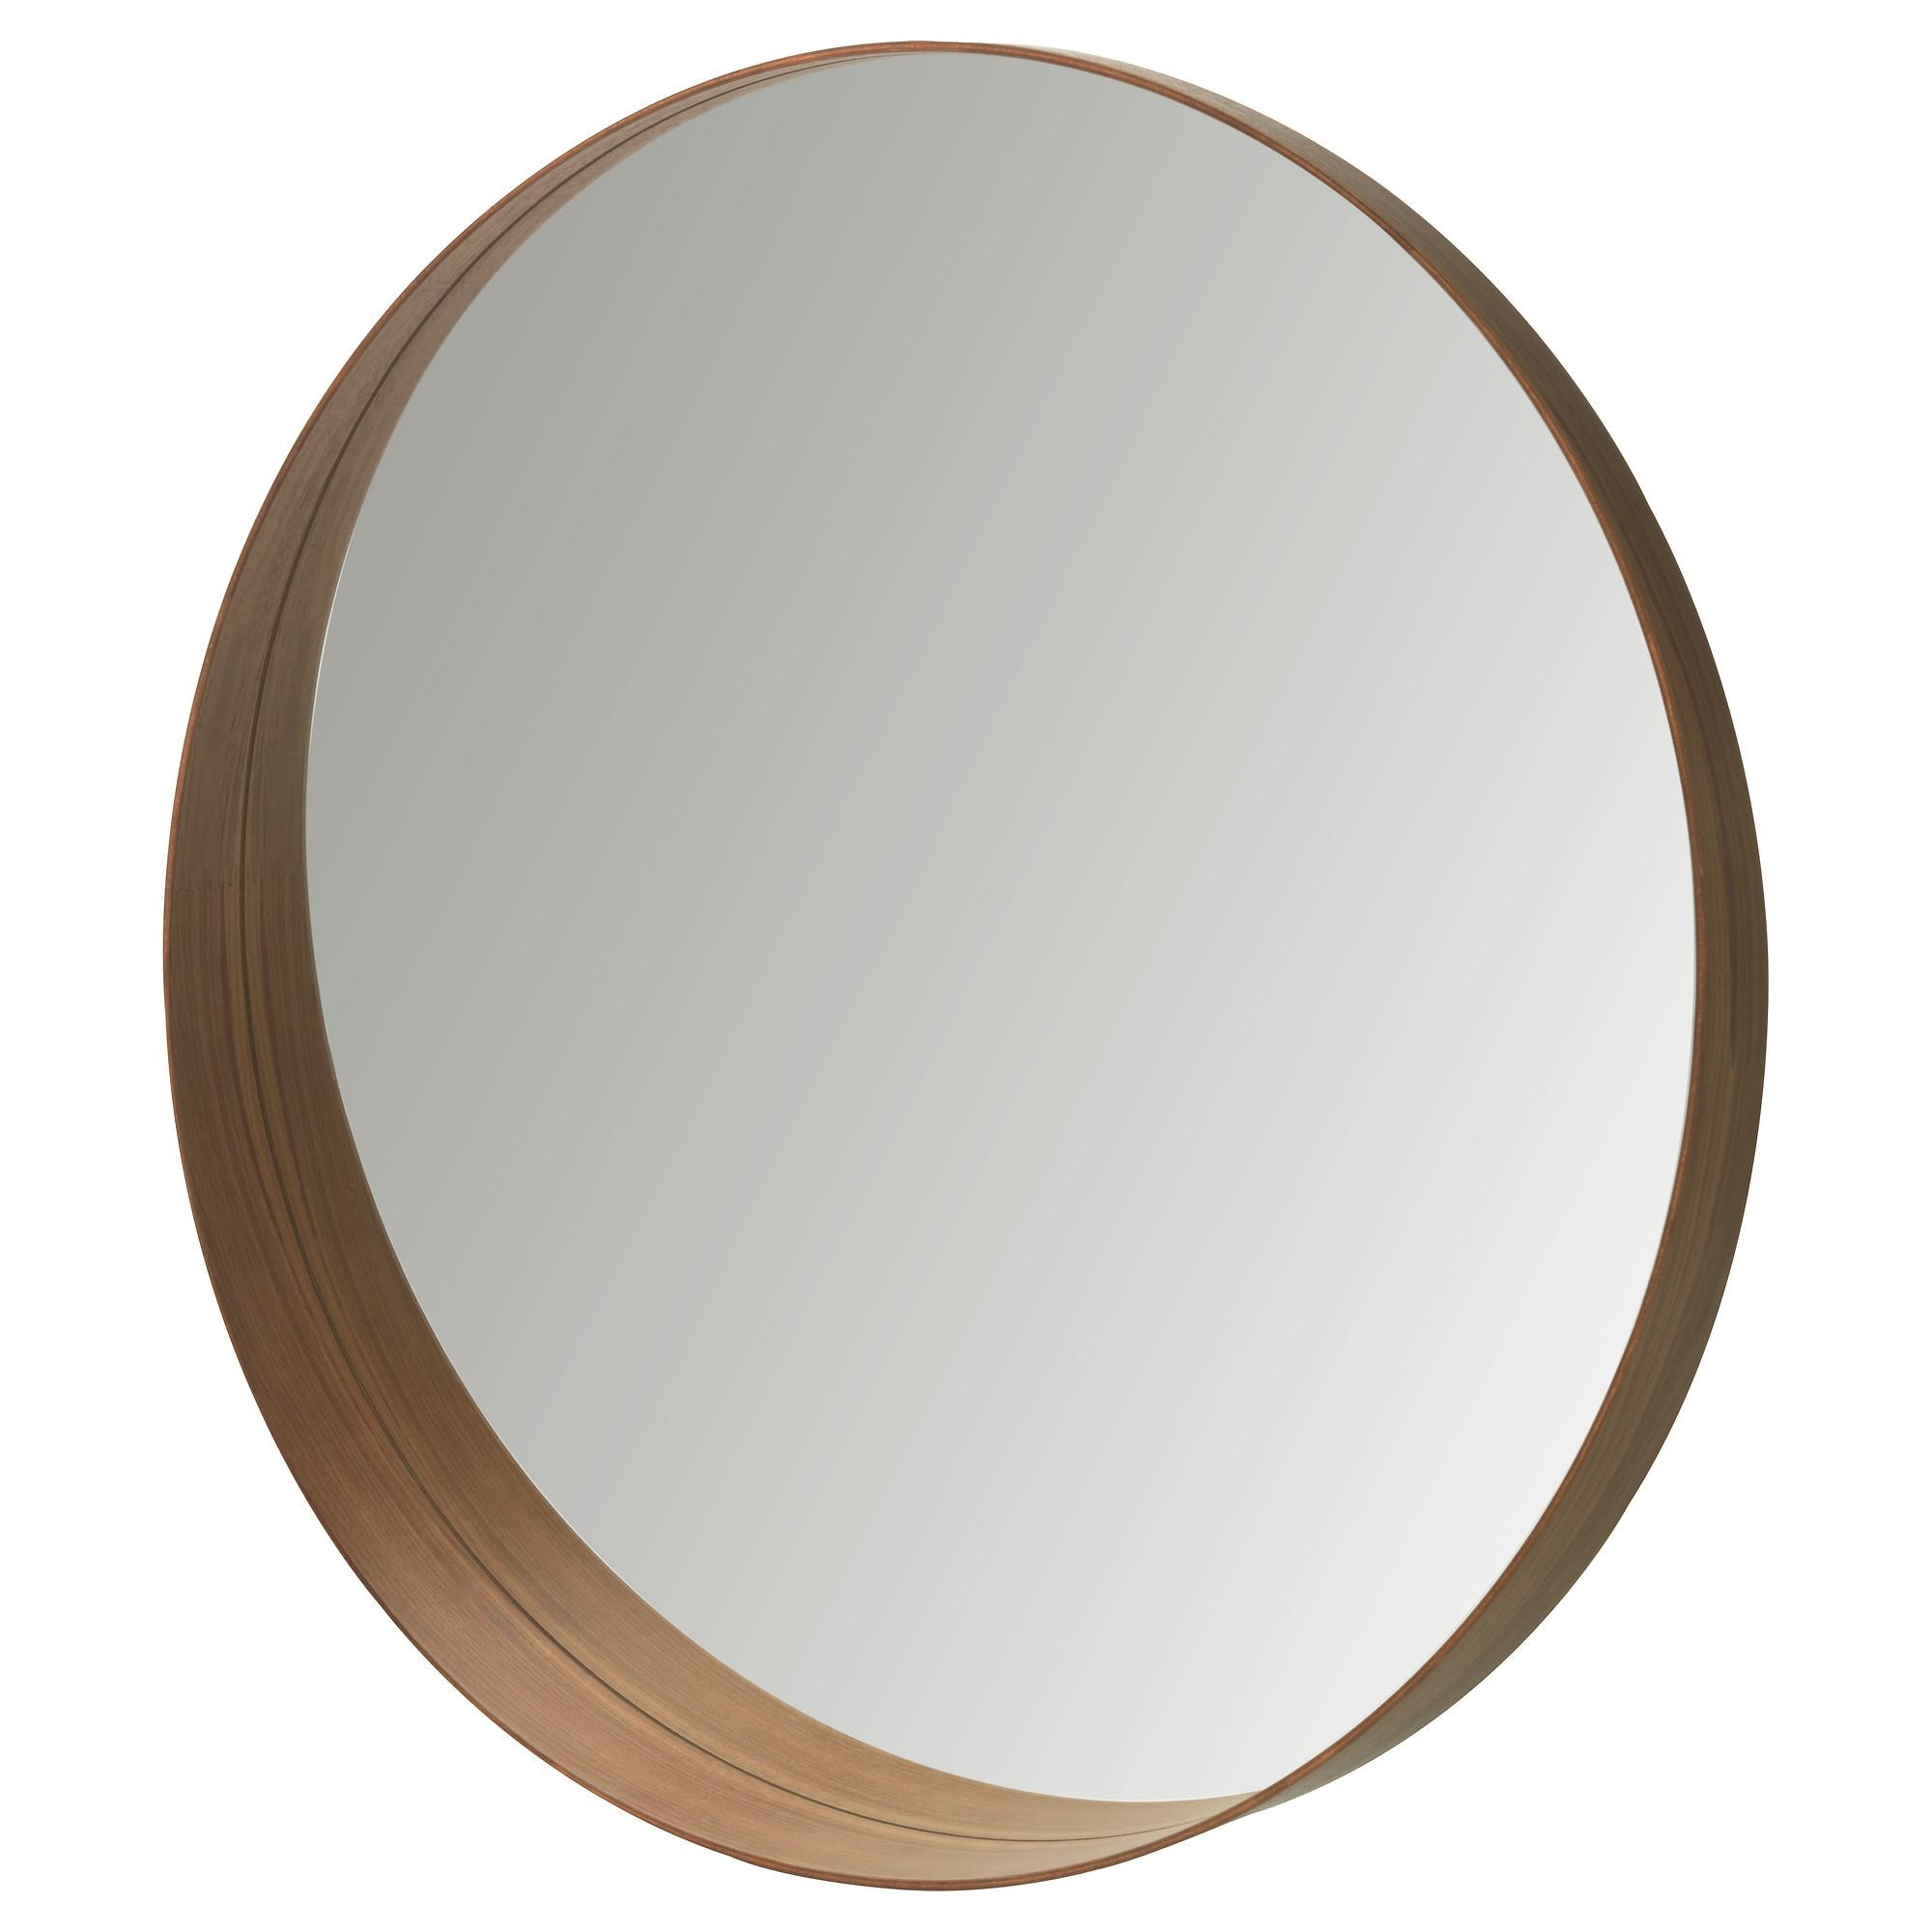 Bathroom Mirrors – Ikea Inside Round Mirrors (Image 3 of 20)